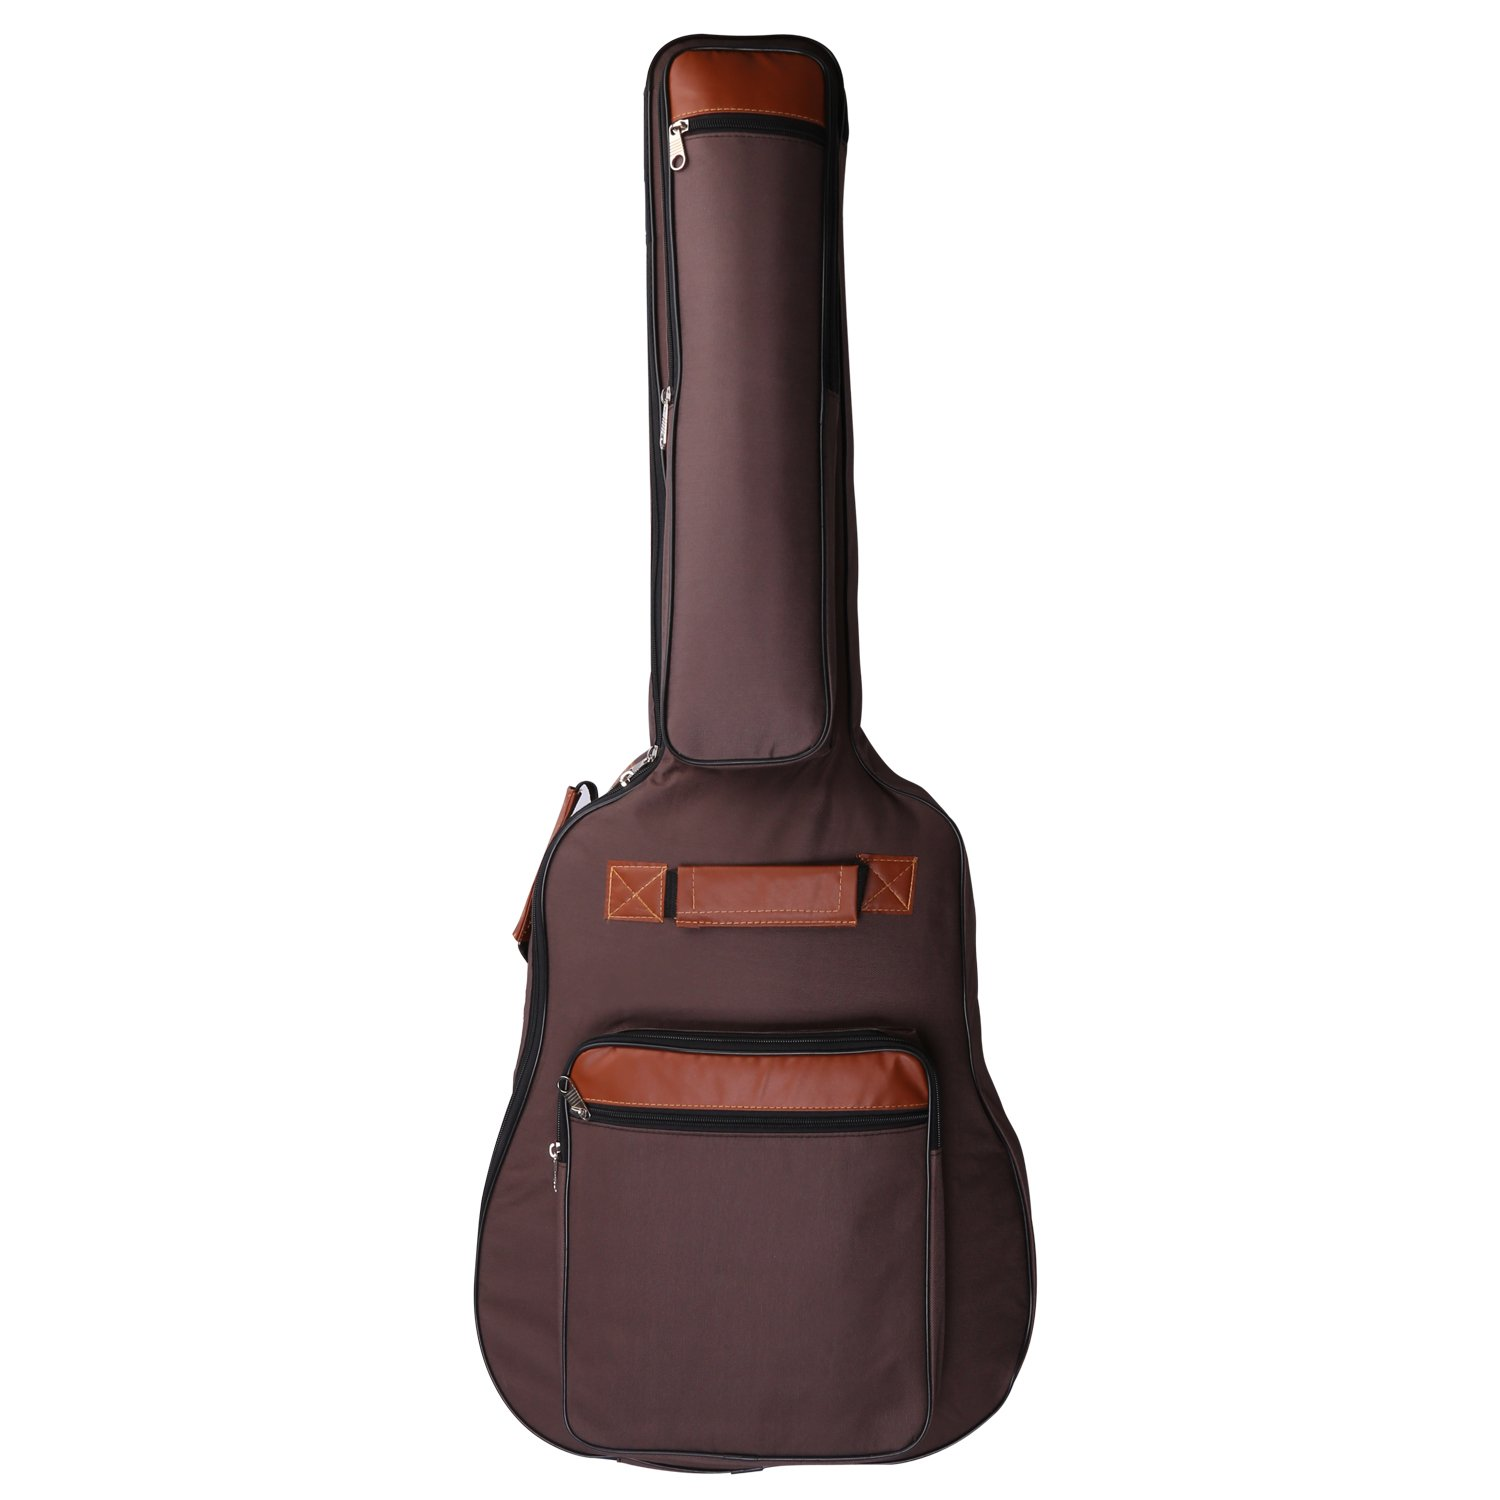 CAHAYA Guitar Bag 41 Inches [Premium Version] Guitar Case Waterproof Oxford Cloth with 0.31 Inch Thick Sponge Padded for Classical Electronic Guitar (Brown)